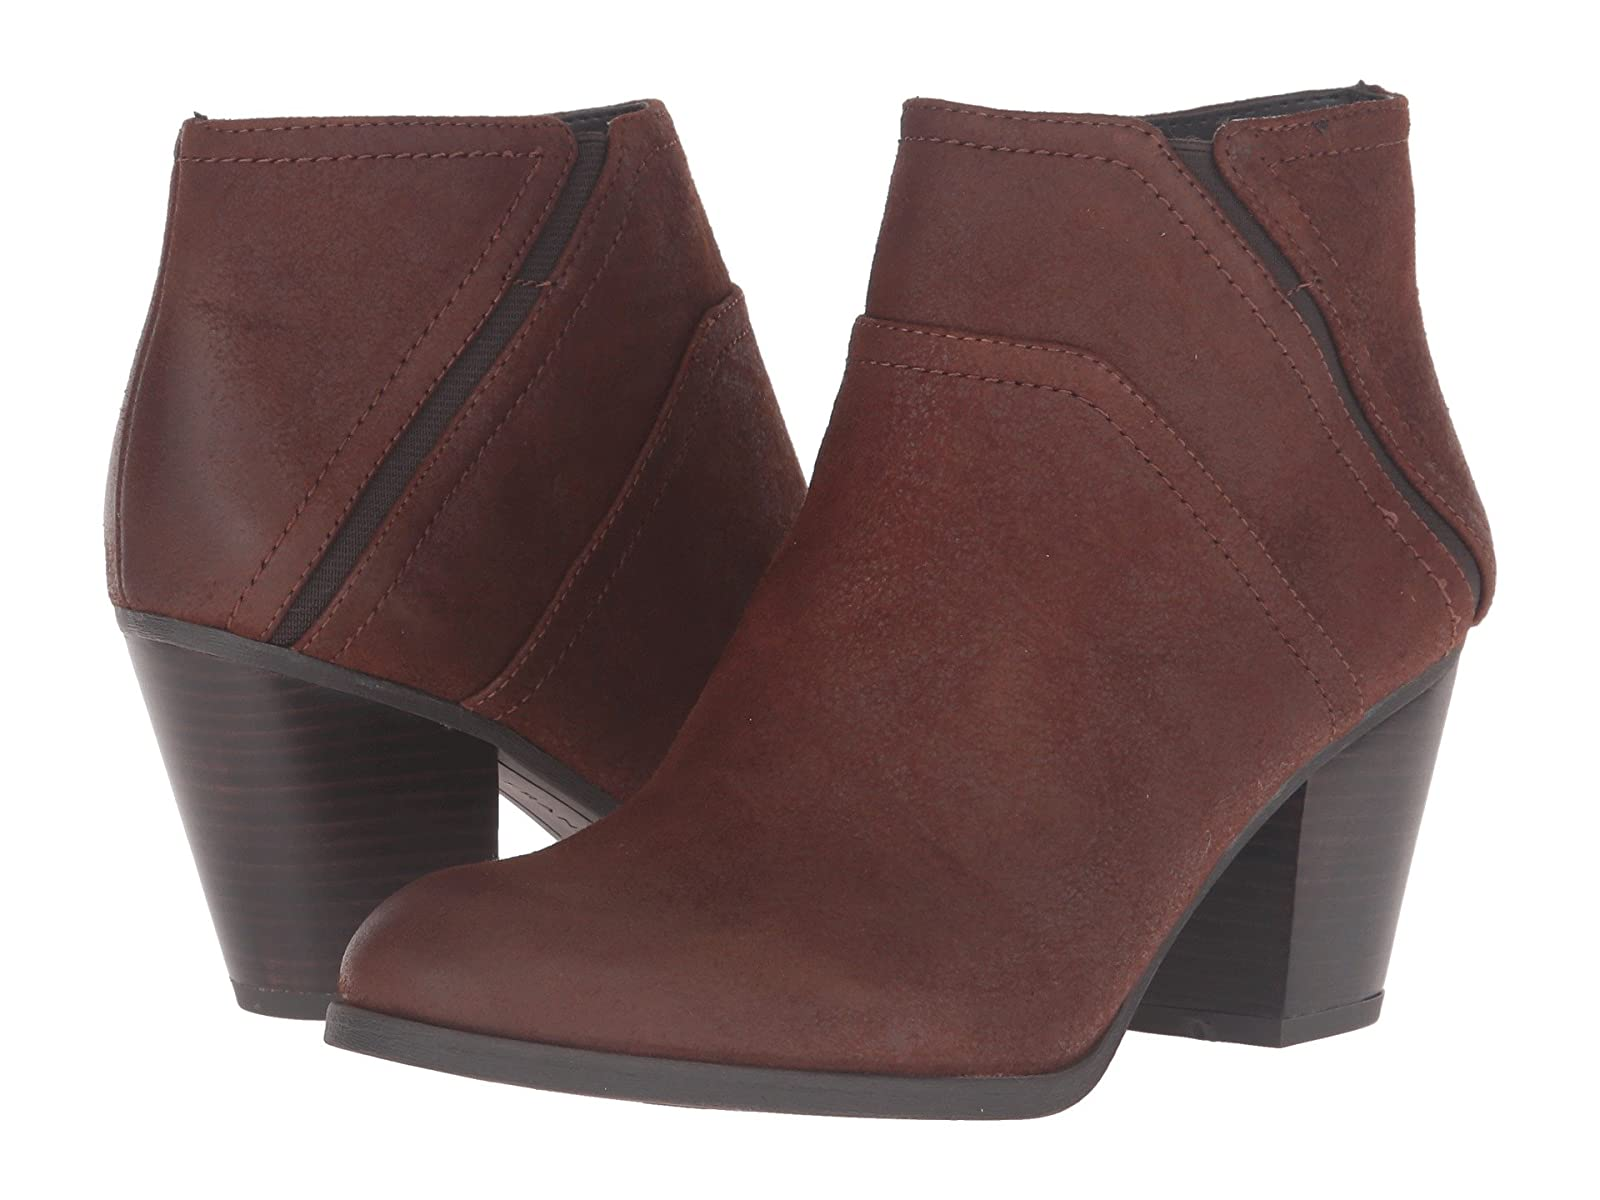 Franco Sarto DominoCheap and distinctive eye-catching shoes